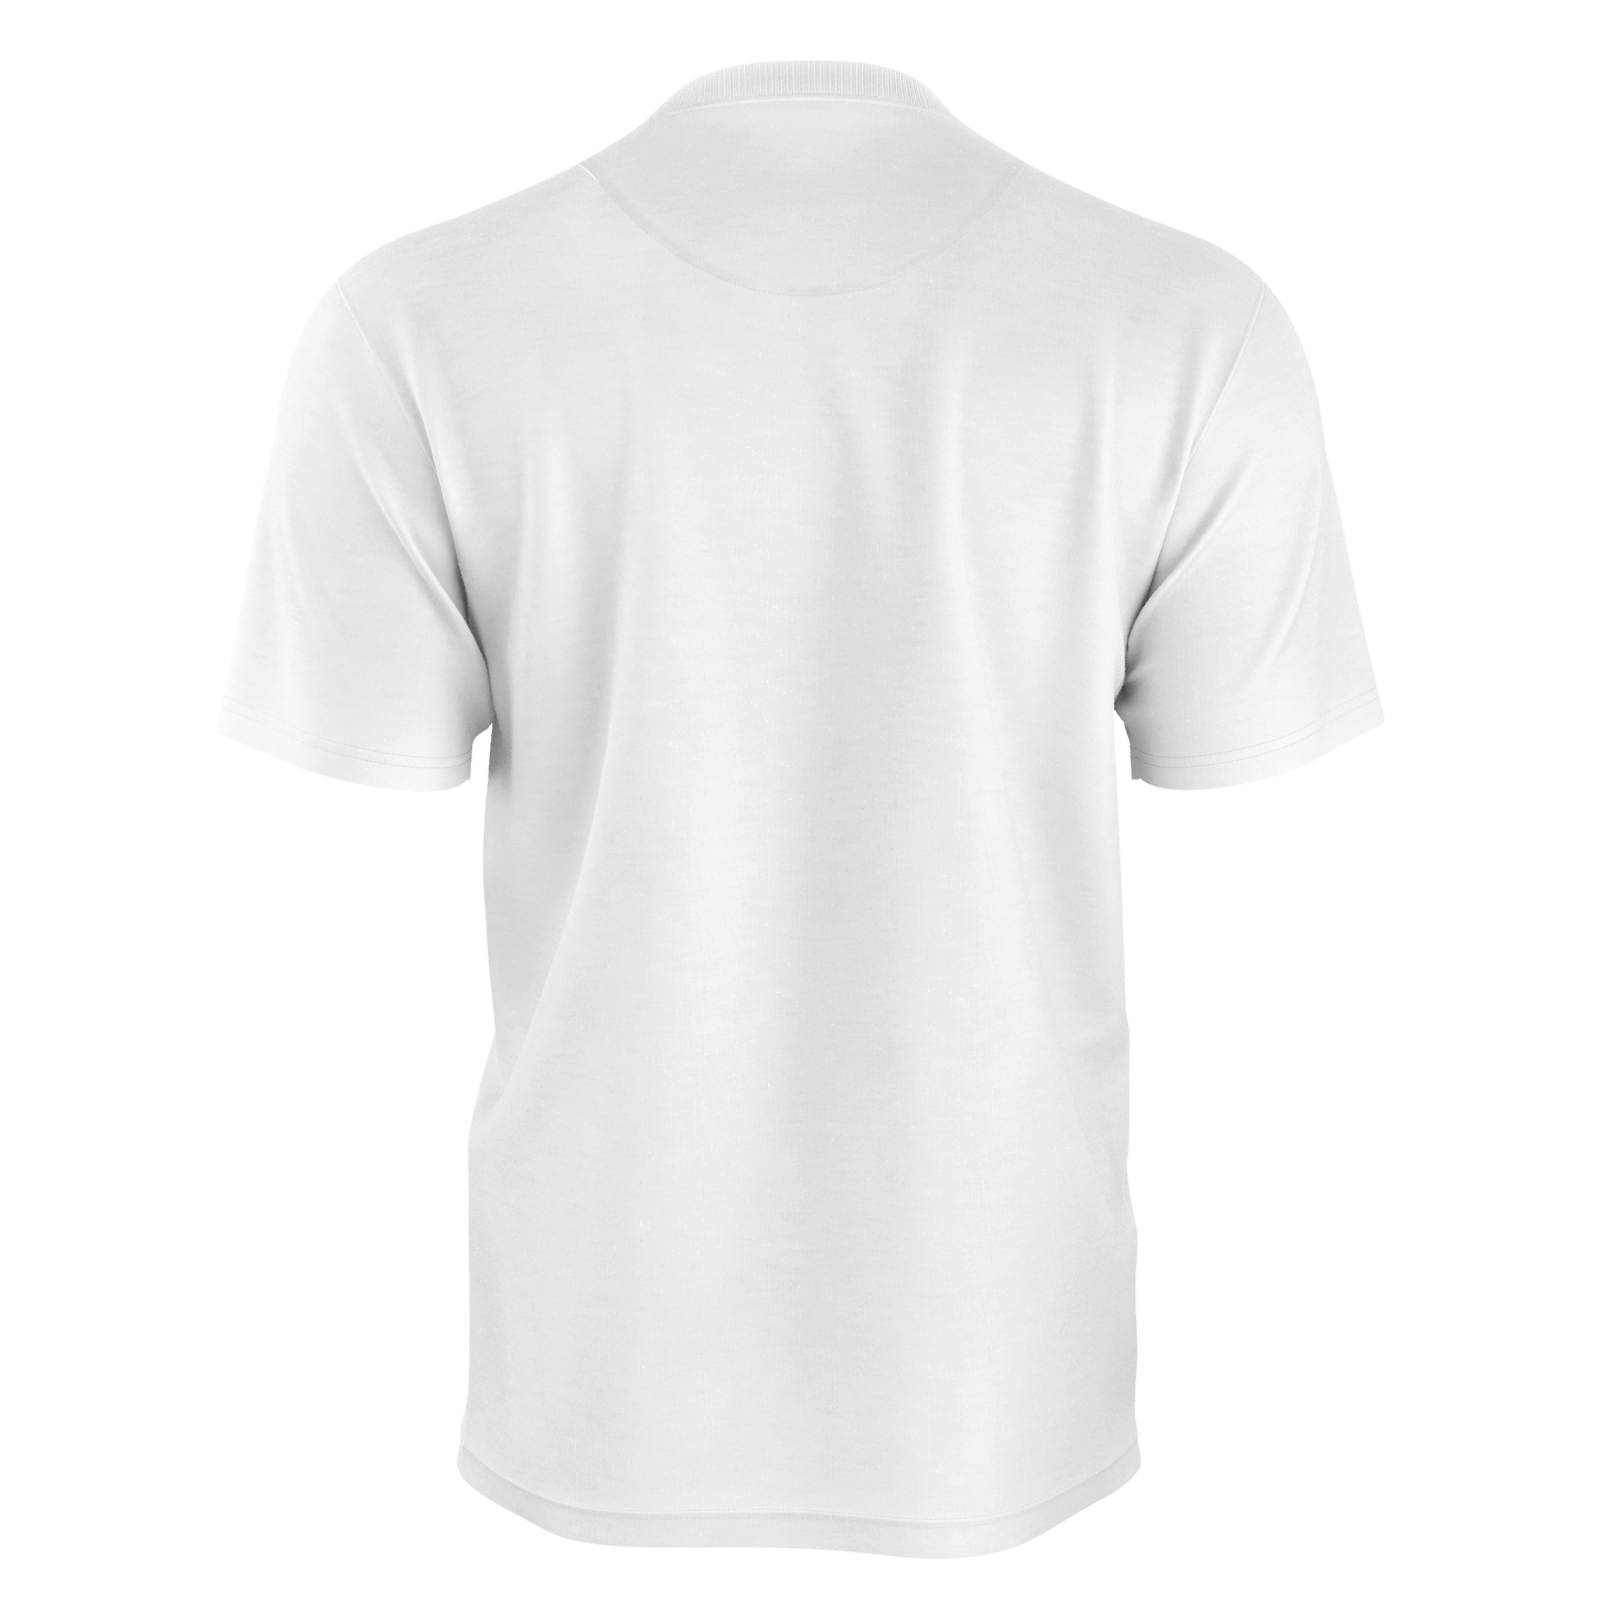 Mr. Moon - White Front Logo T-Shirt